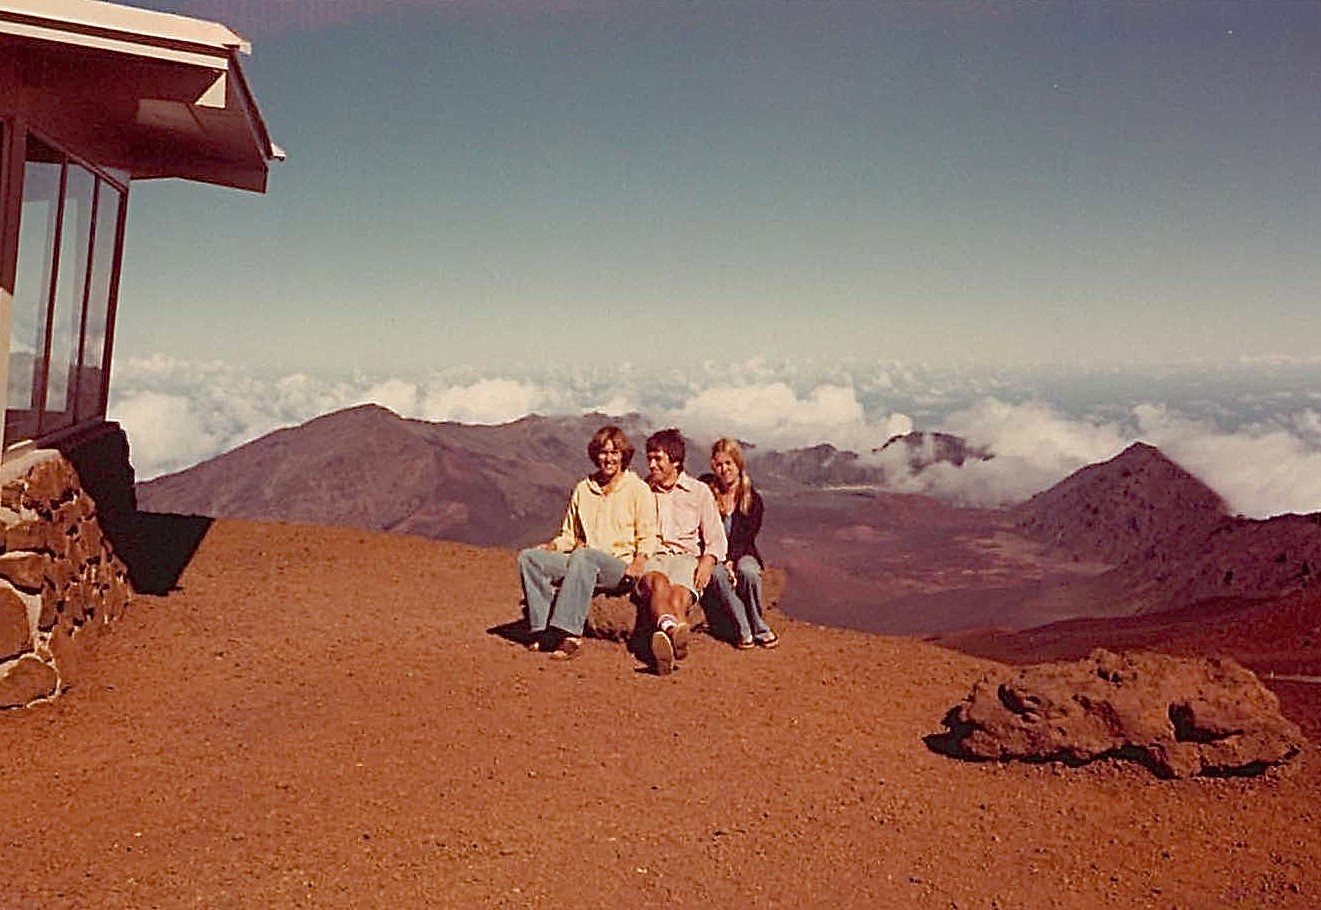 Hawaii Trip, Oct. 1976, Lorraine, John, Shirley Clift, Oct. 1976